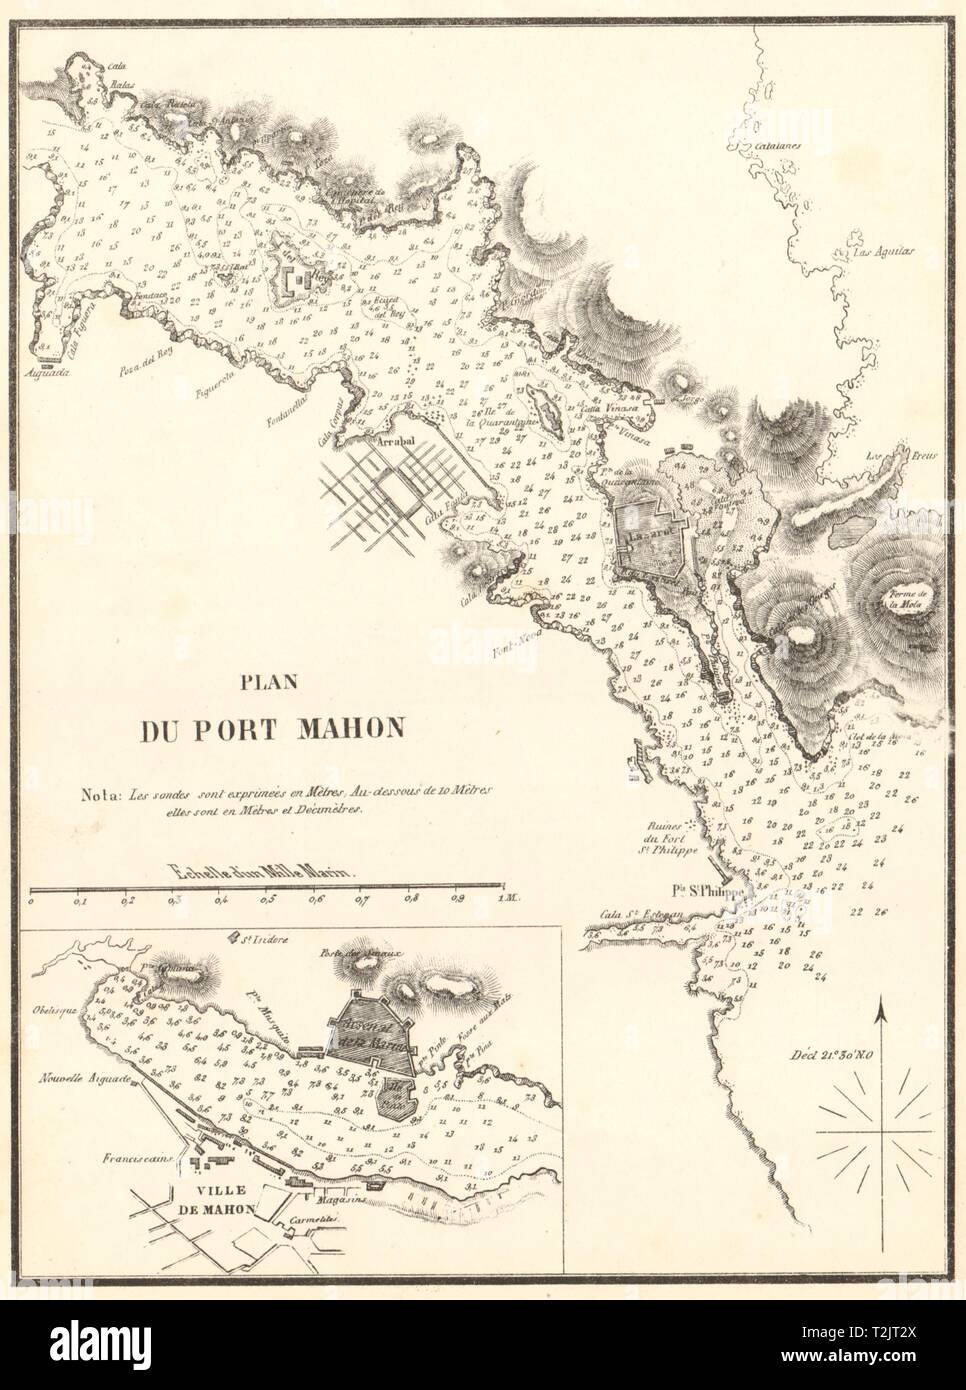 Plan of Port Mahon. 'Plan du Port Mahon'. Spain. Menorca. GAUTTIER 1851 map - Stock Image